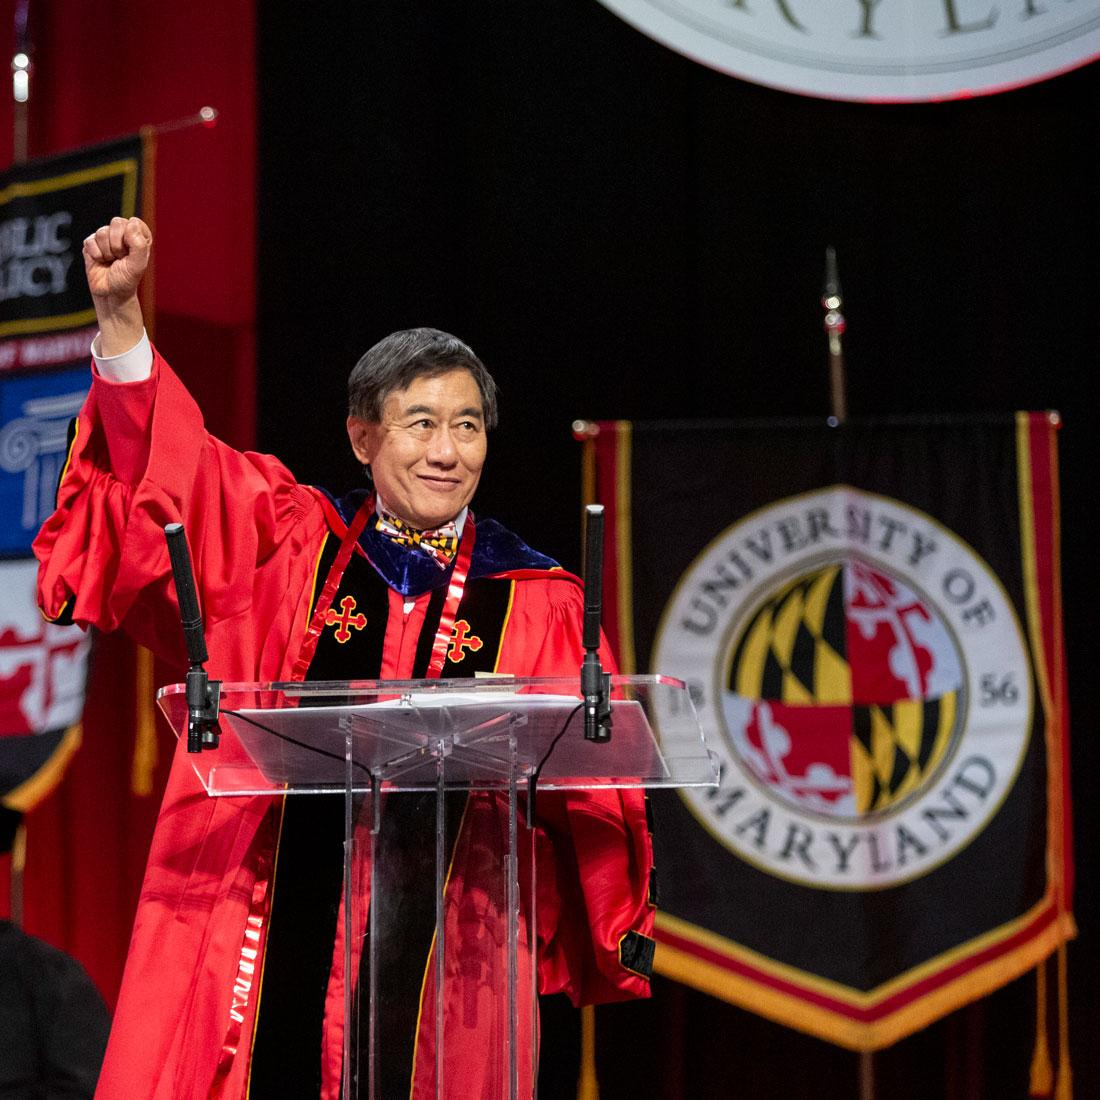 Wallace D. Loh, President, University of Maryland at Commencement